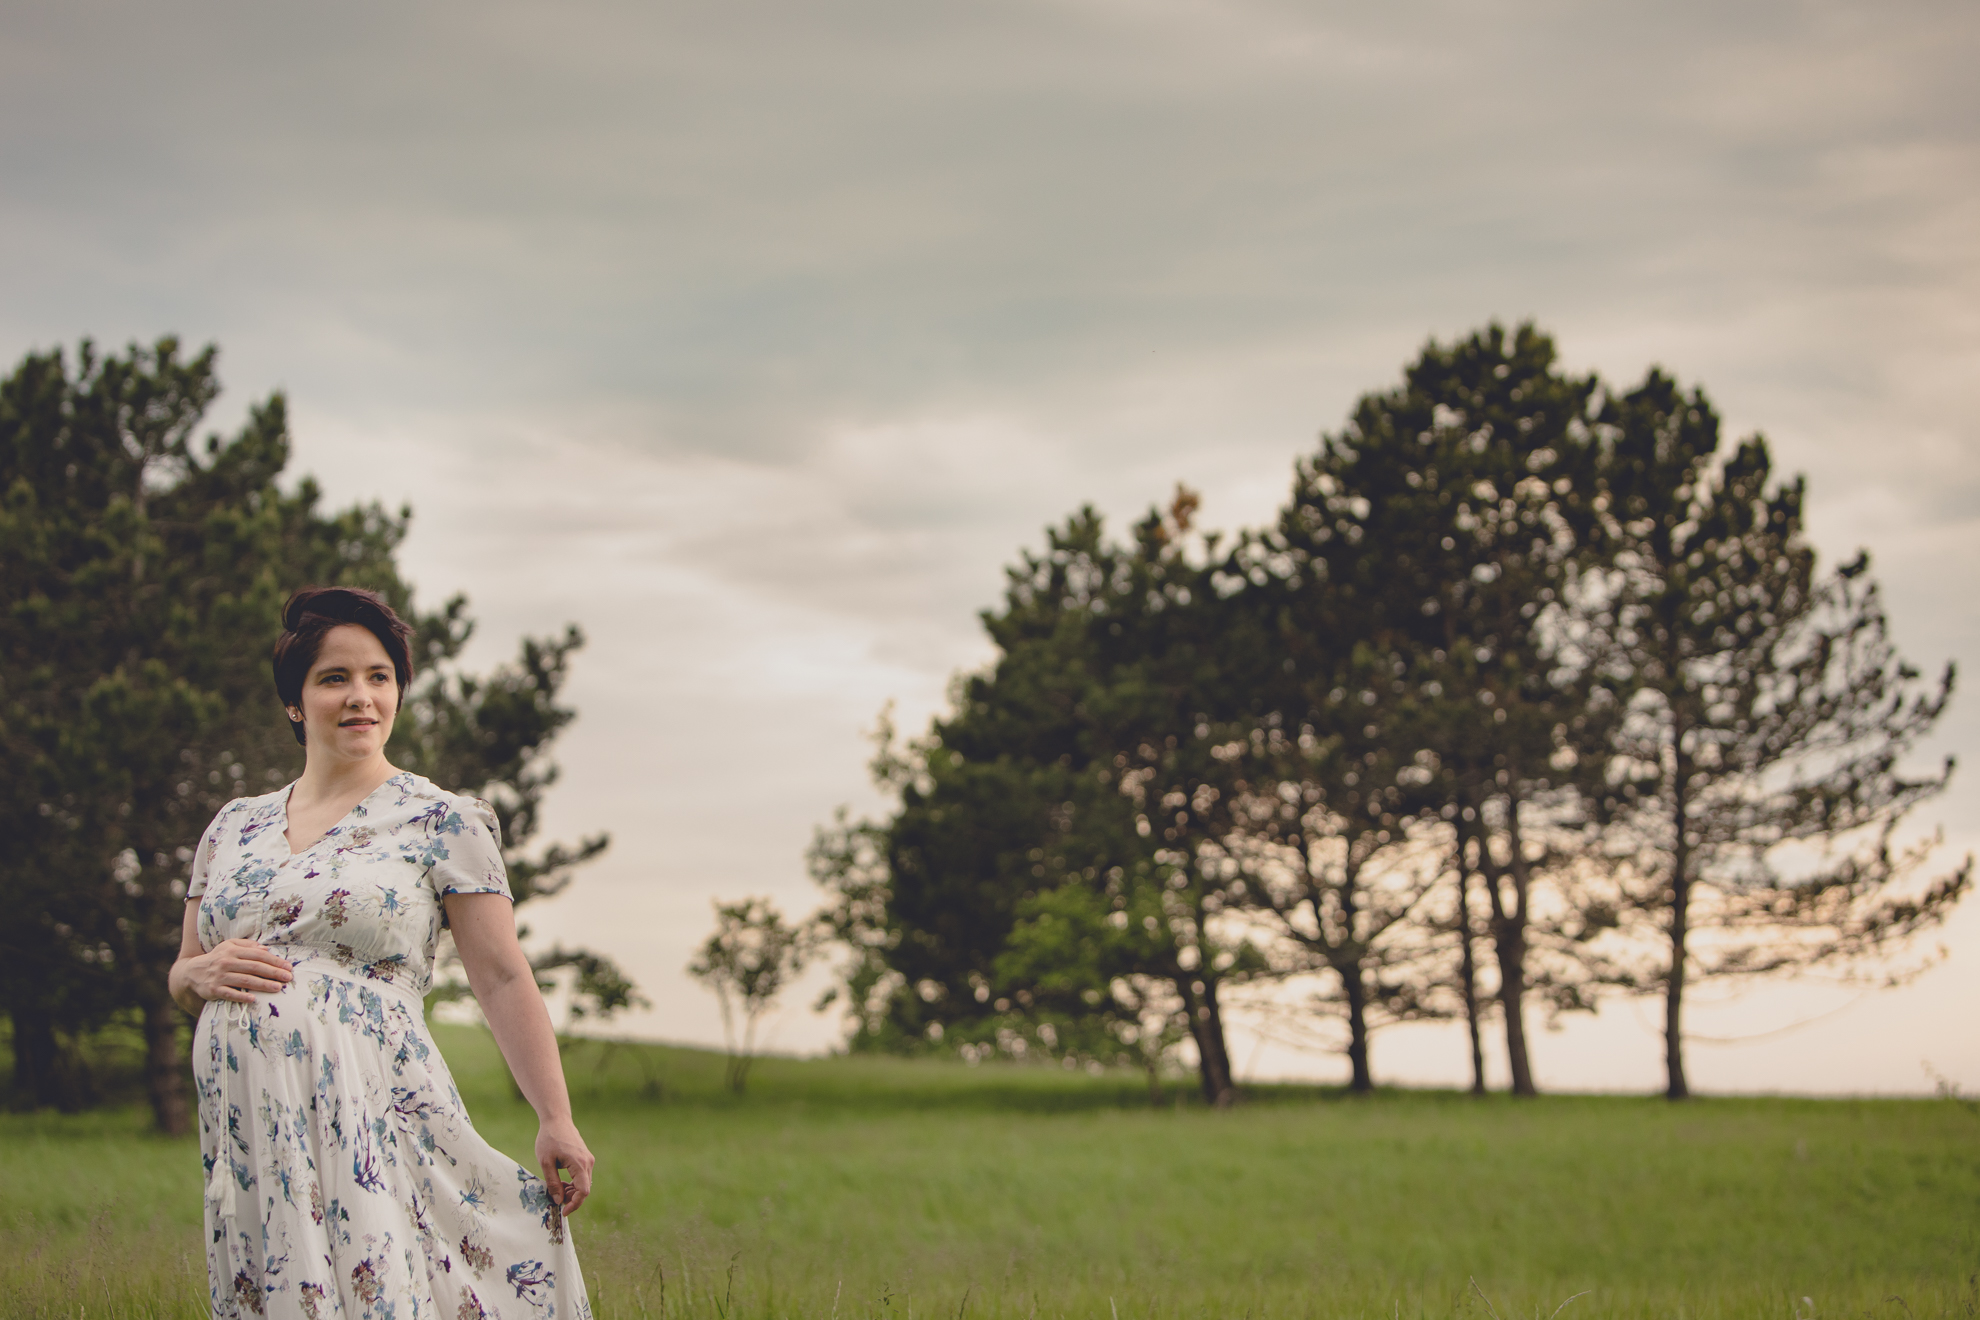 mom looks off to side while holding flowing dress during maternity portrait photography session in field at Tifft Nature Preserve in Buffalo, NY